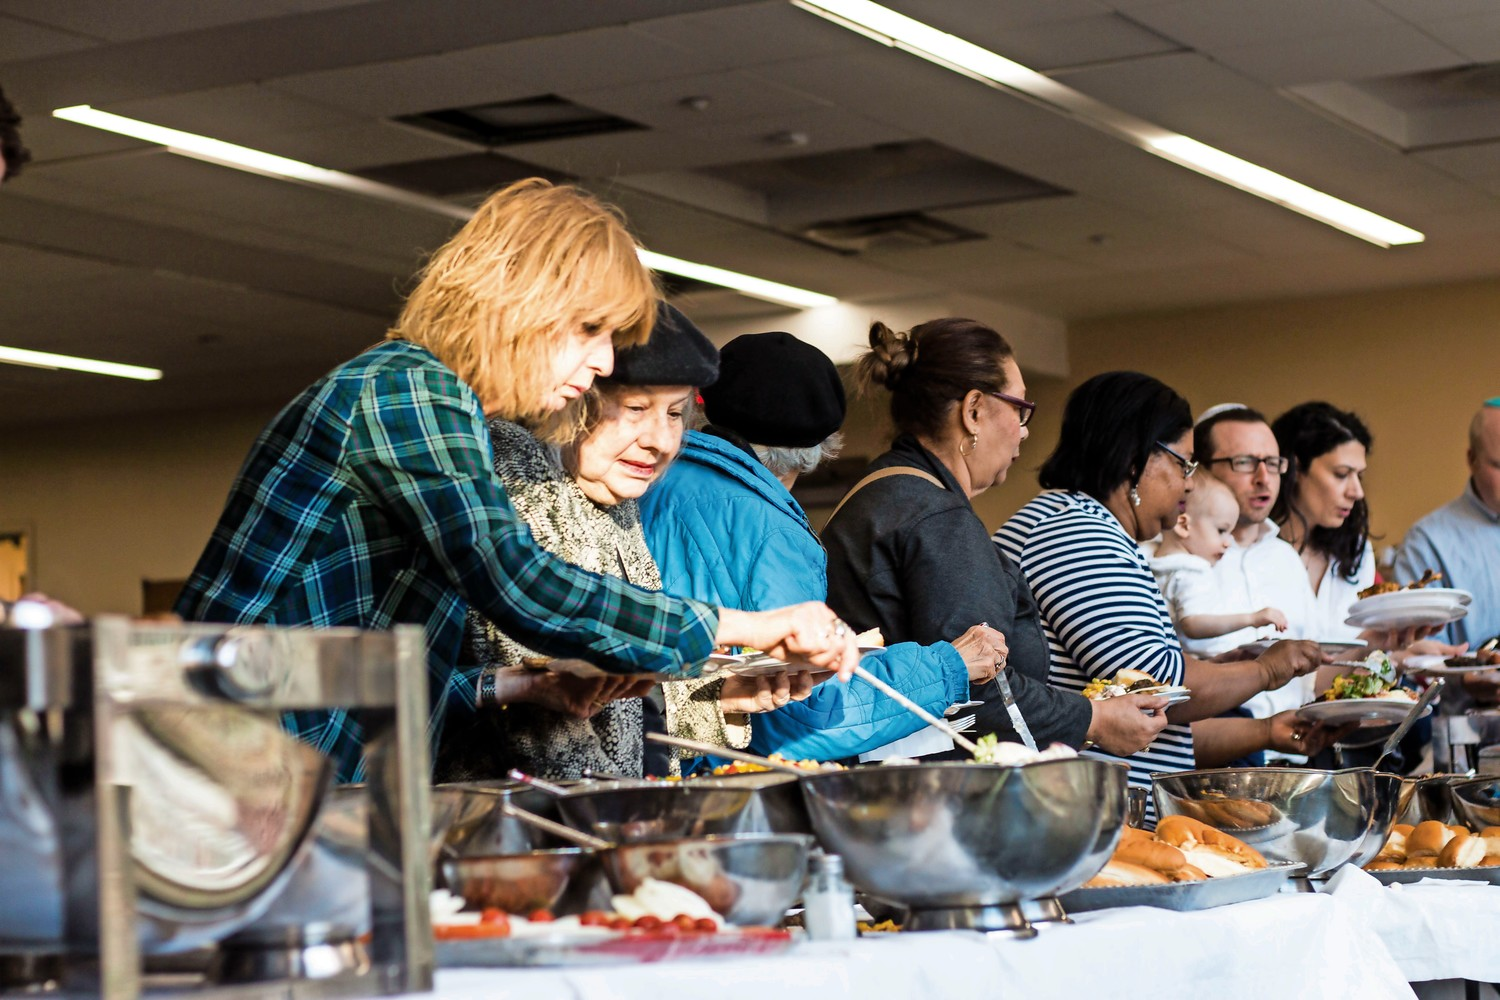 Attendees serve themselves food during the Bronx Israeli Independence Day Festival at the Hebrew Institute of Riverdale. As part of the event's program, free kosher barbeque was provided.